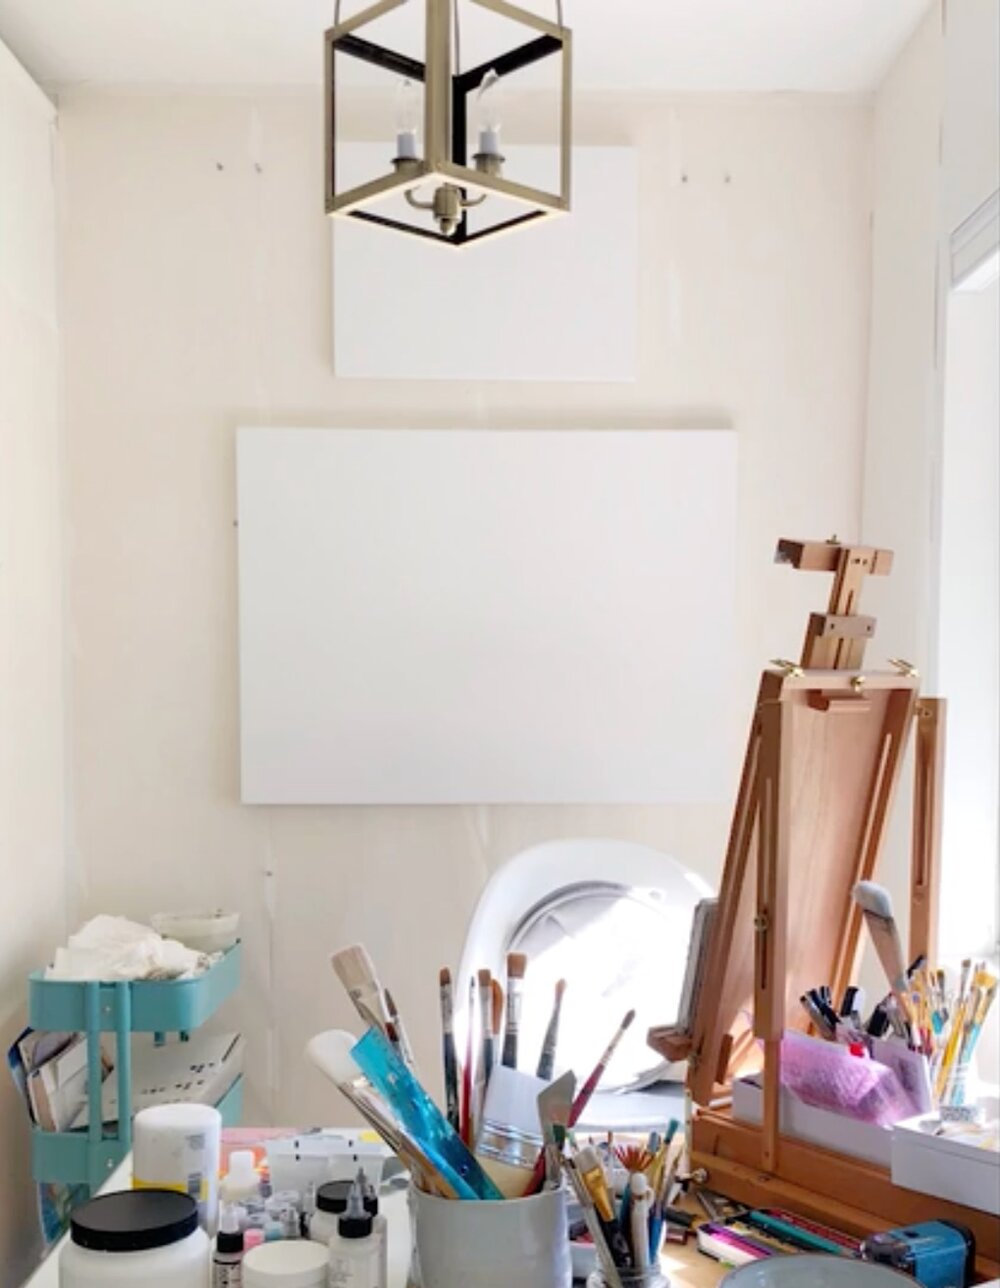 In a few simple steps, you'll have your own studio set up.